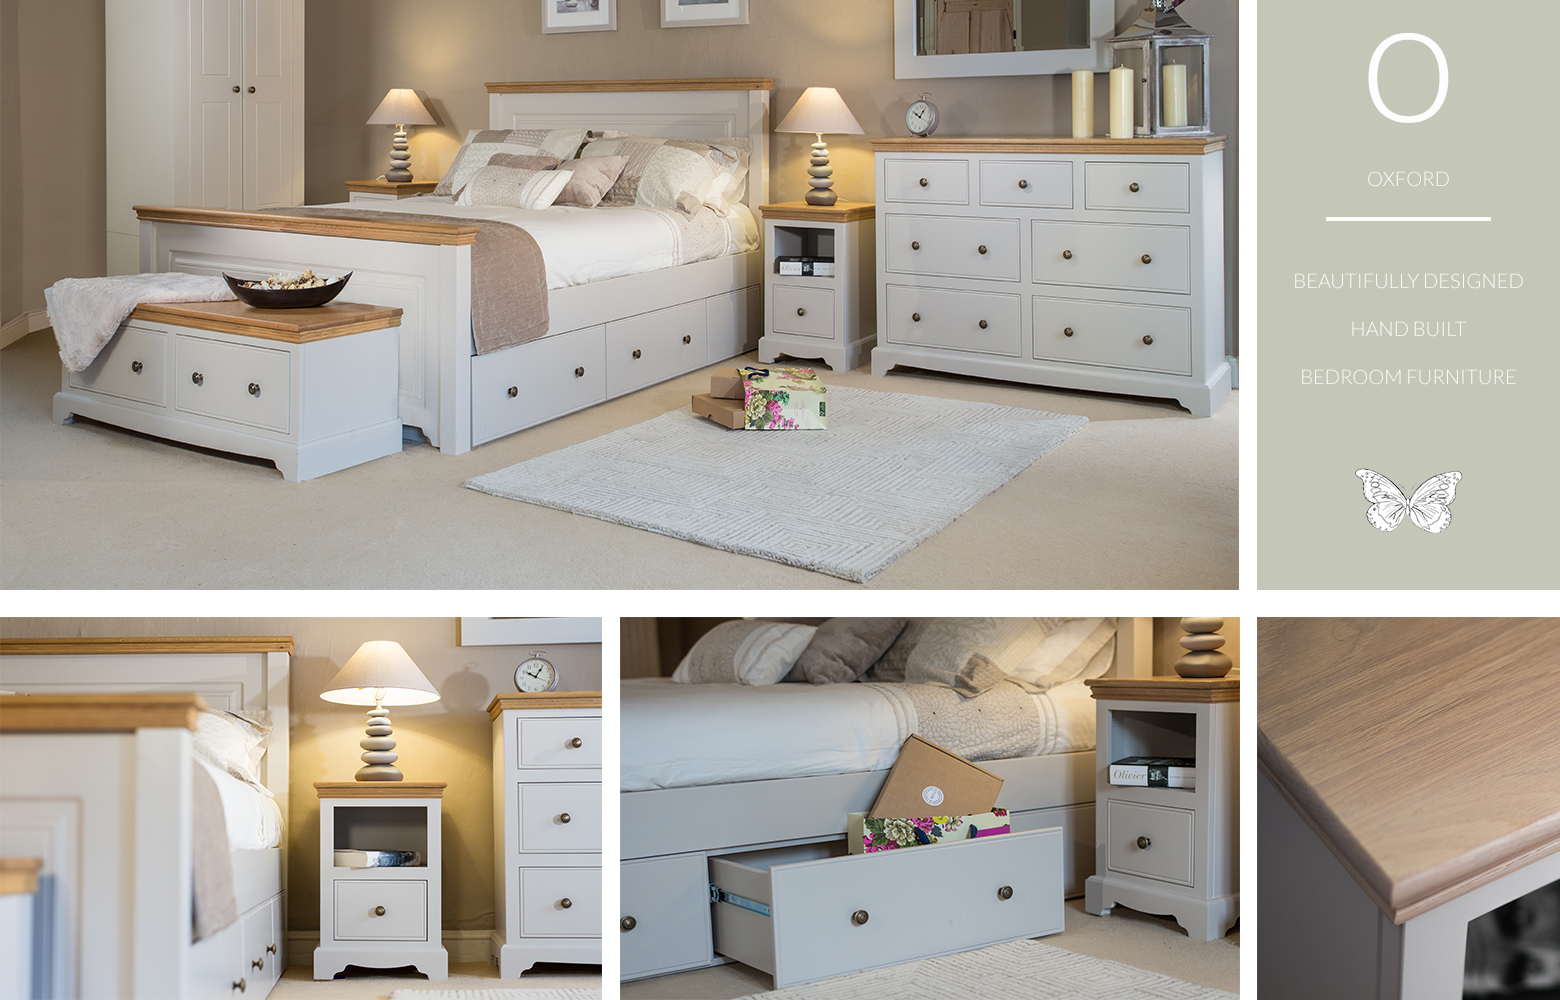 Conceived, Designed, Engineered, Manufactured, Painted And Finished  Entirely In The UK. The Oxford Painted Bedroom Furniture Collection Is A  Modern ...